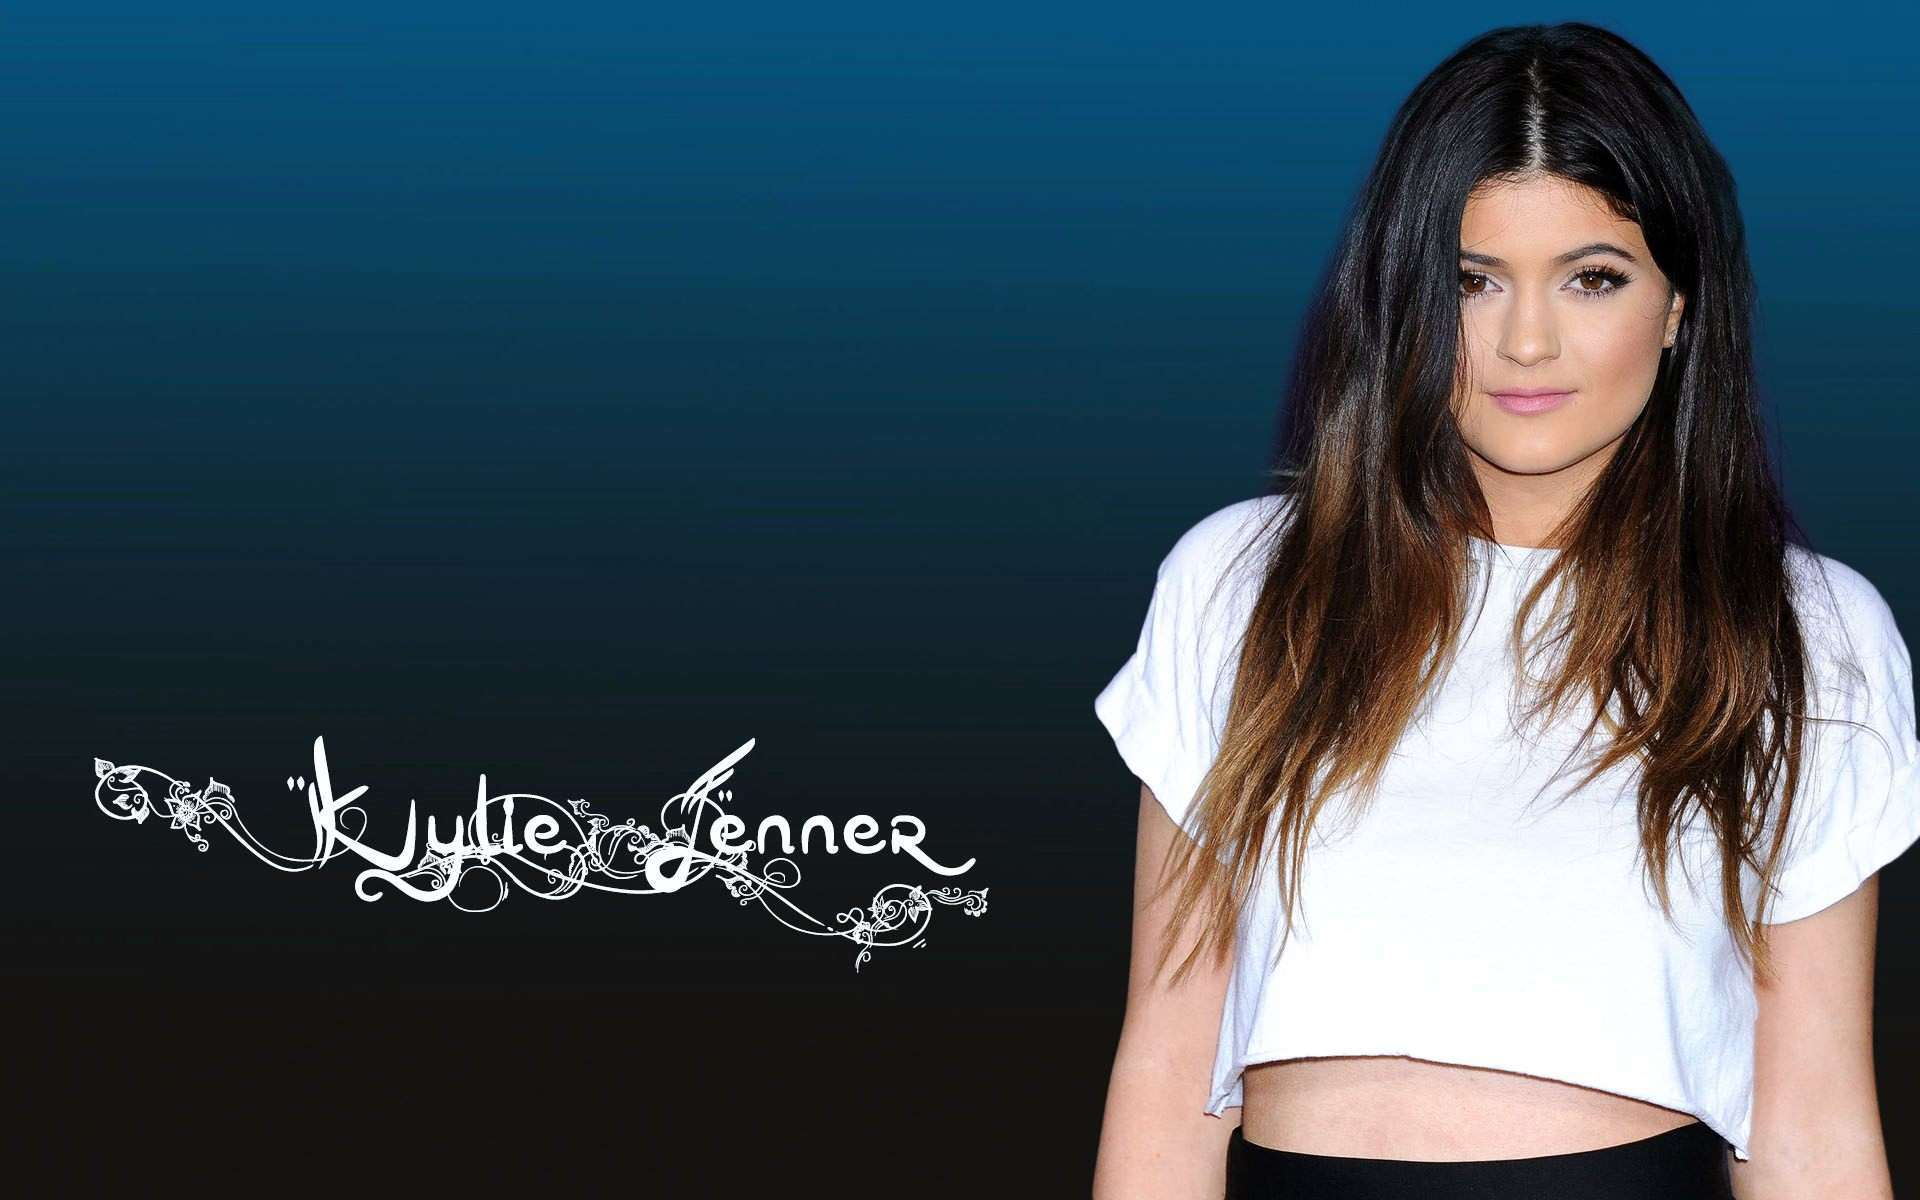 Kylie Jenner Wallpapers Wallpaper Cave